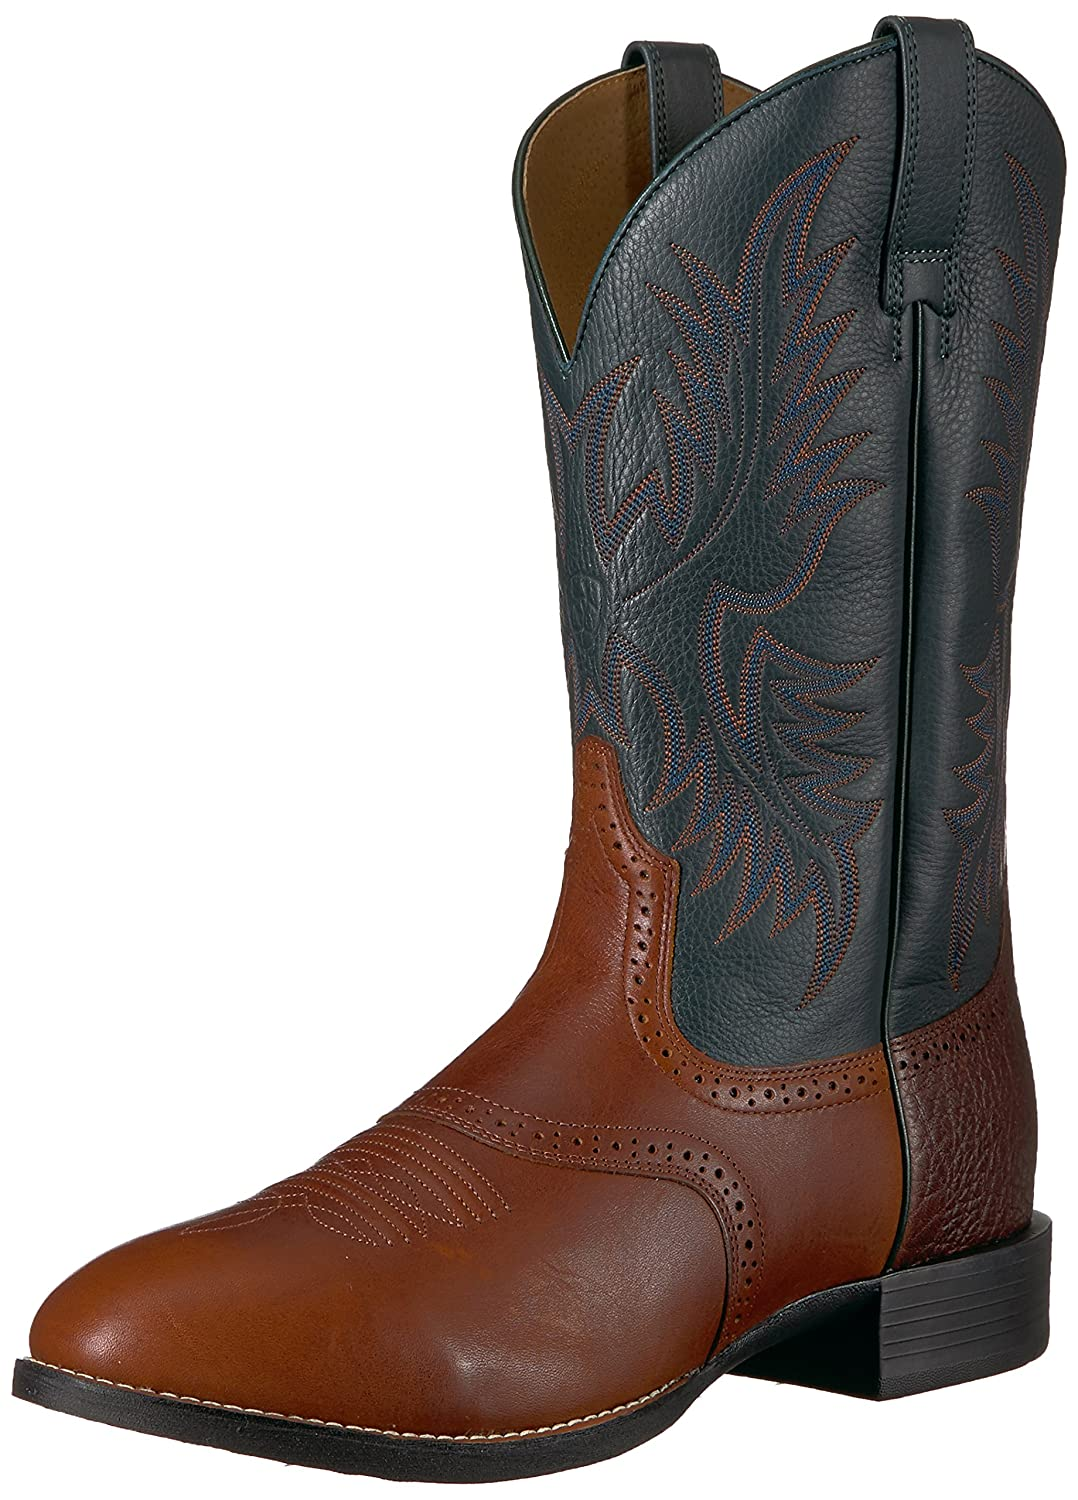 Ariat Men's Heritage Stockman Western Boot B000JWB7R4 10.5 D(M) US|Cedar/Green